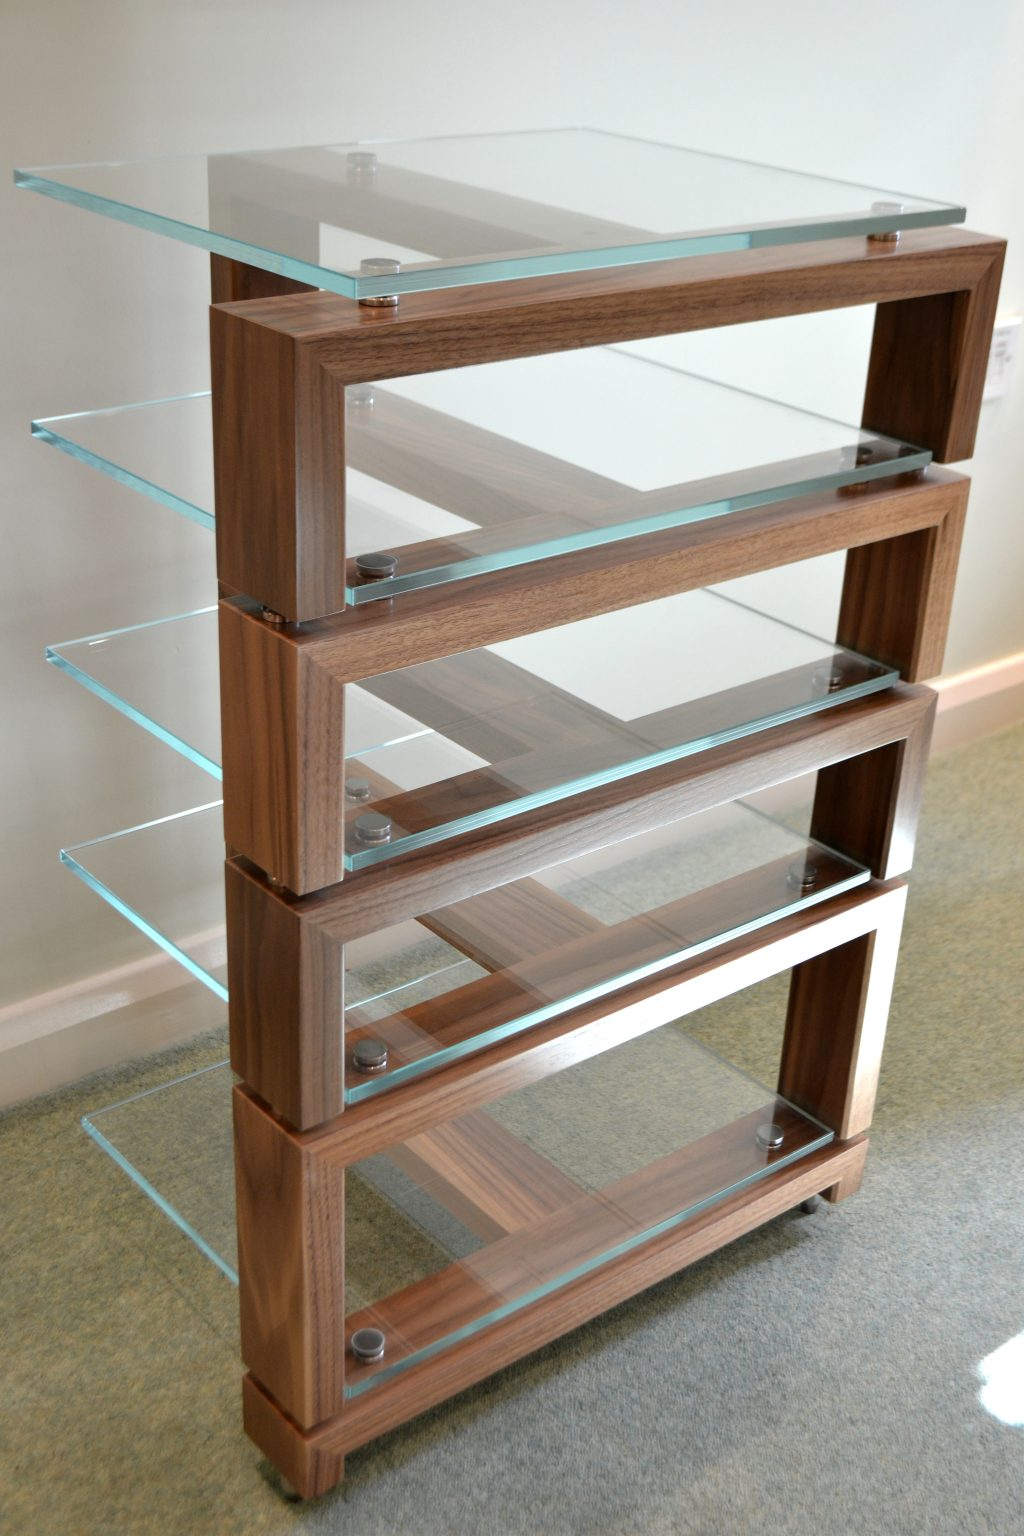 Simrak Equipment Rack